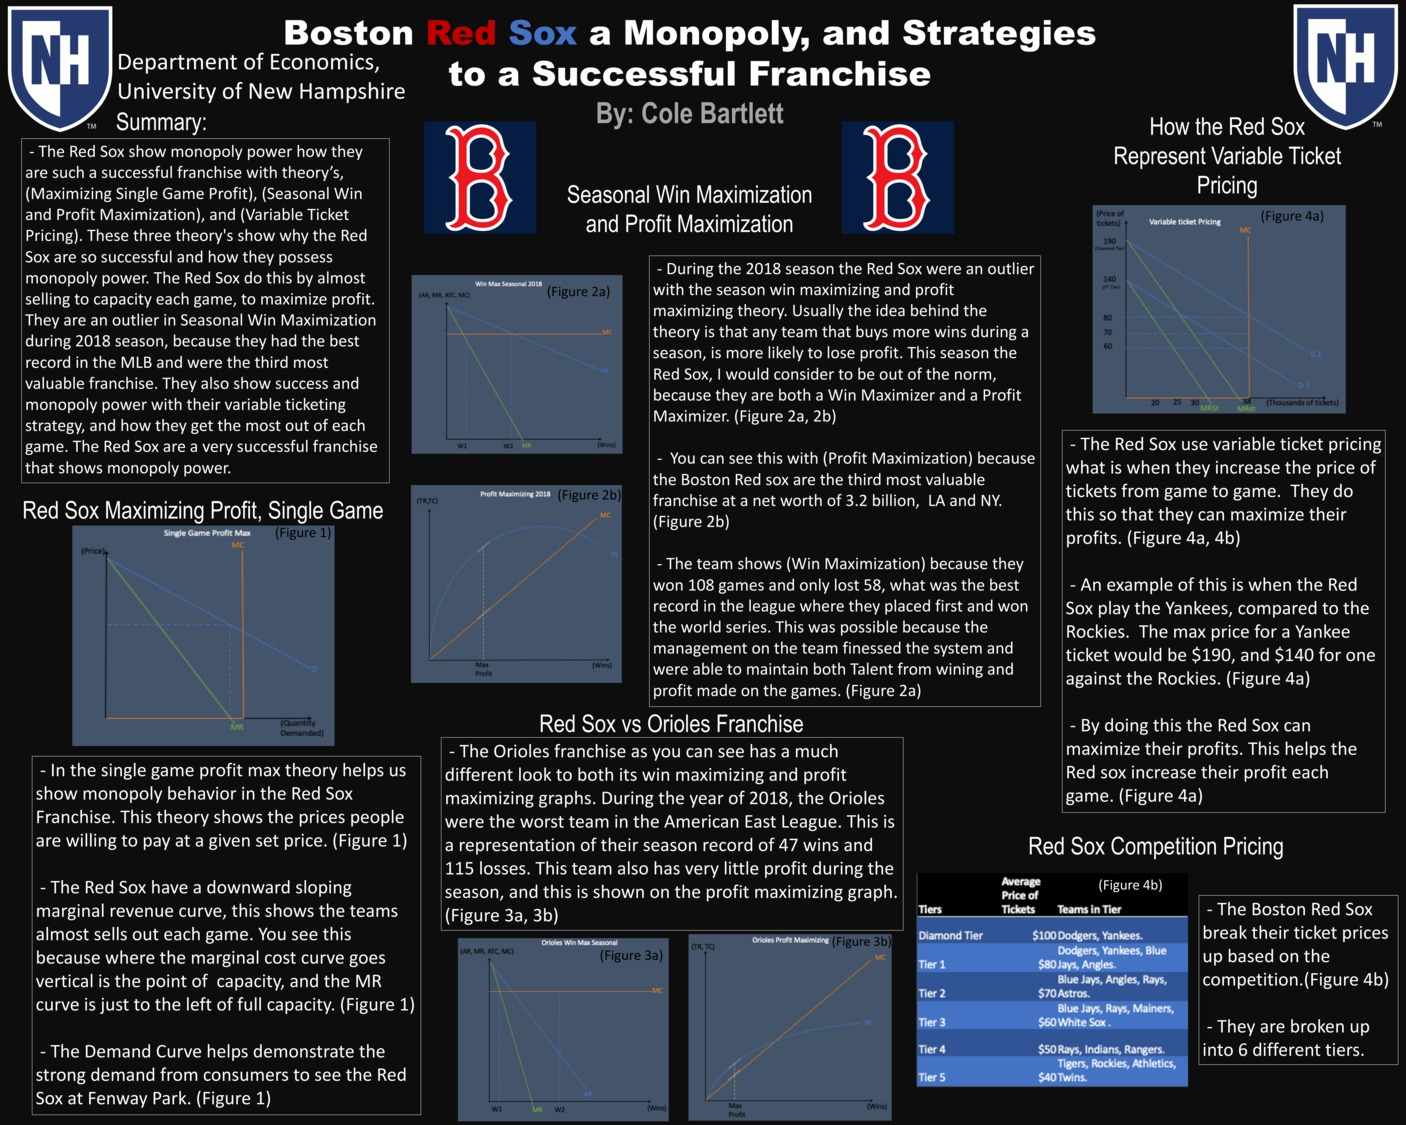 Boston Red Sox A Monopoly, And Strategies To A Successful Franchise  by csb1020